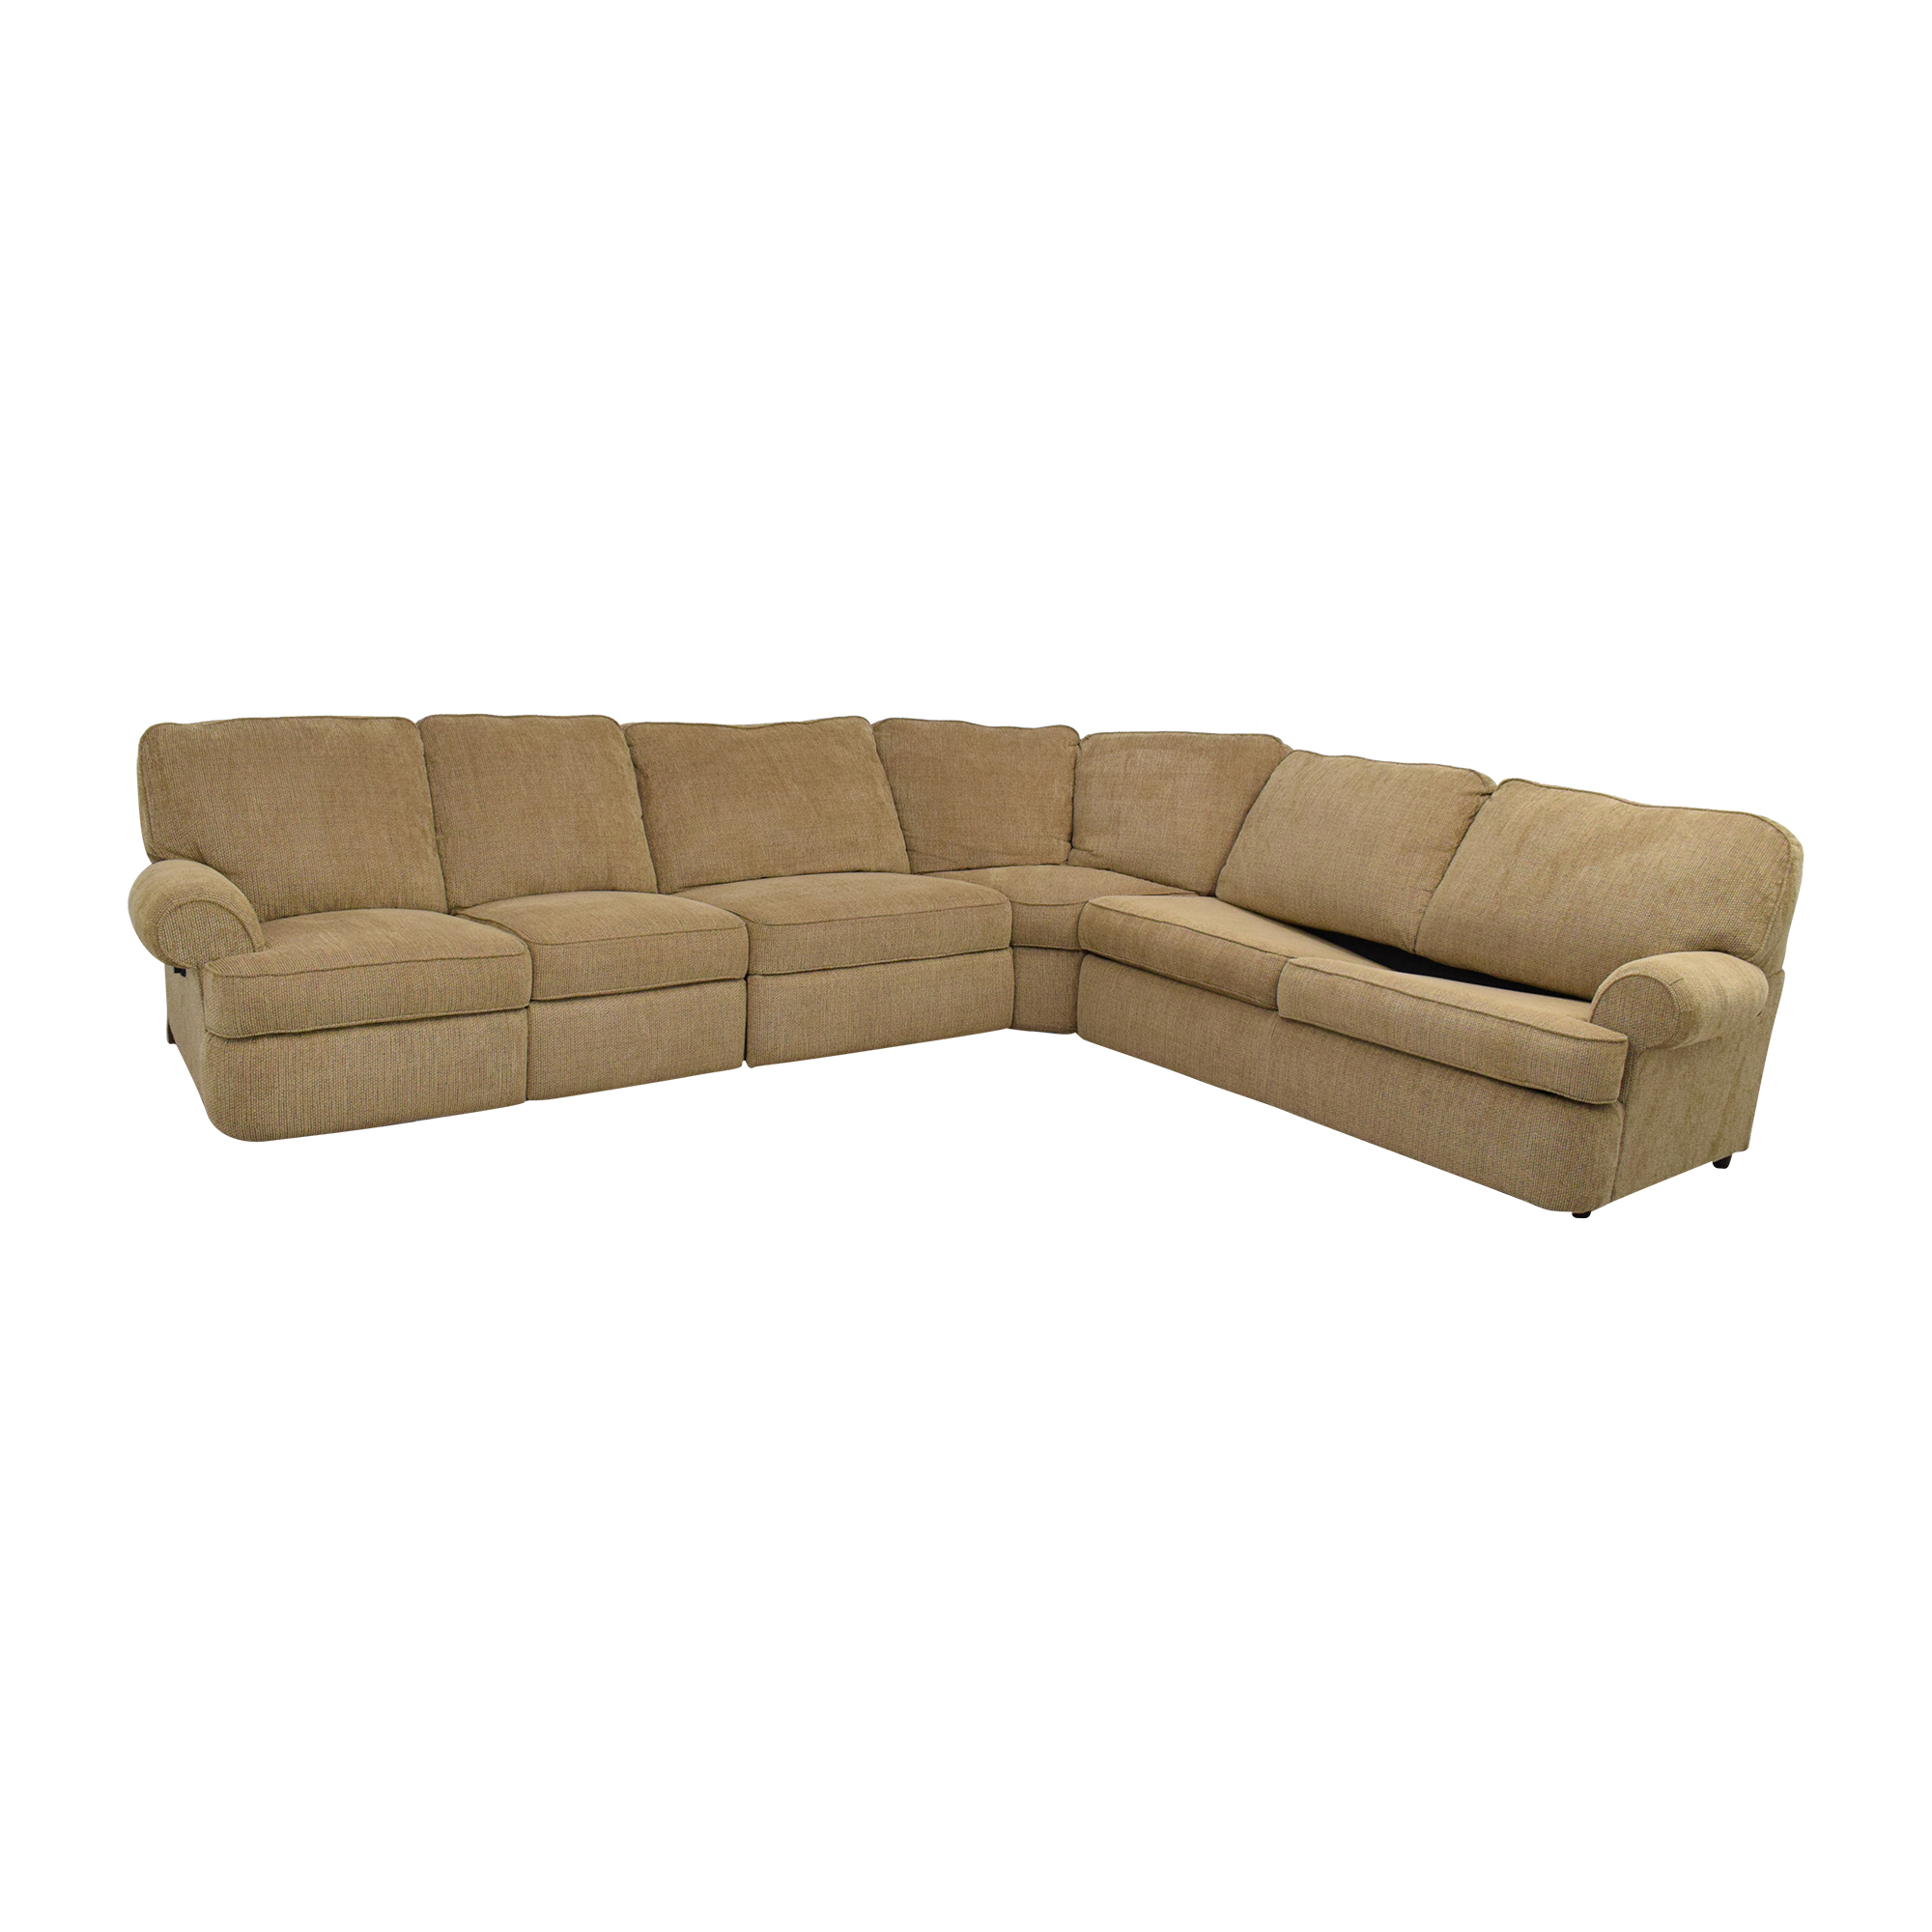 Berkline Reclining Sectional Full Size Sofa Bed / Sectionals